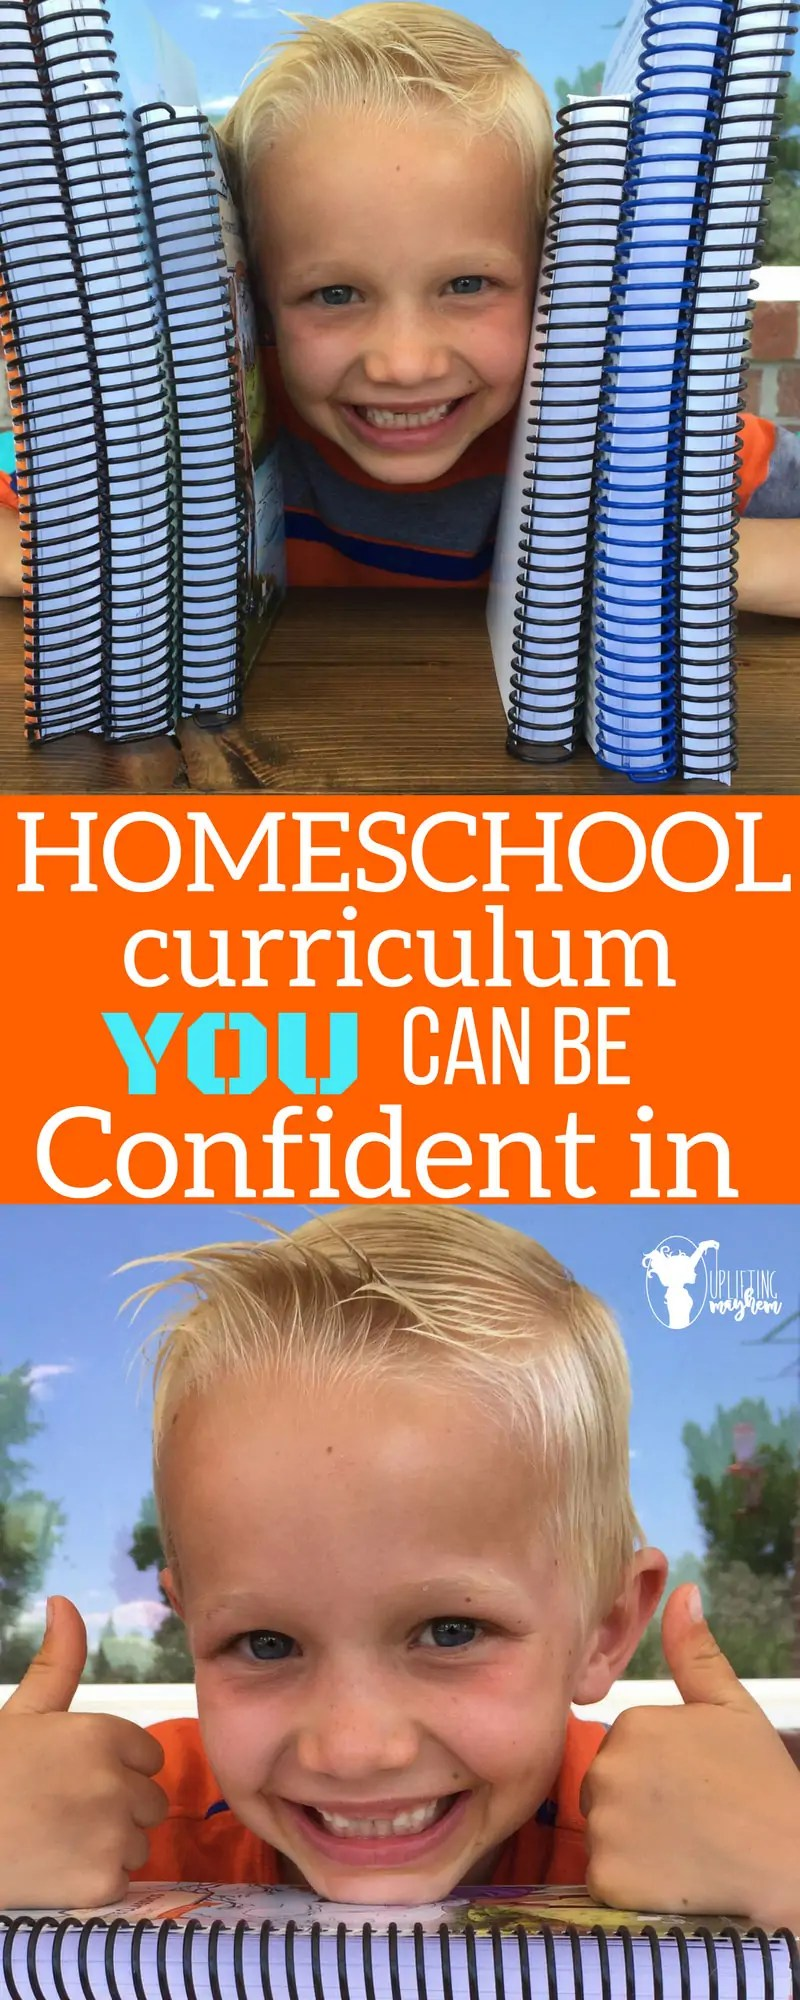 HOMESCHOOL curriculum you can be confident in!